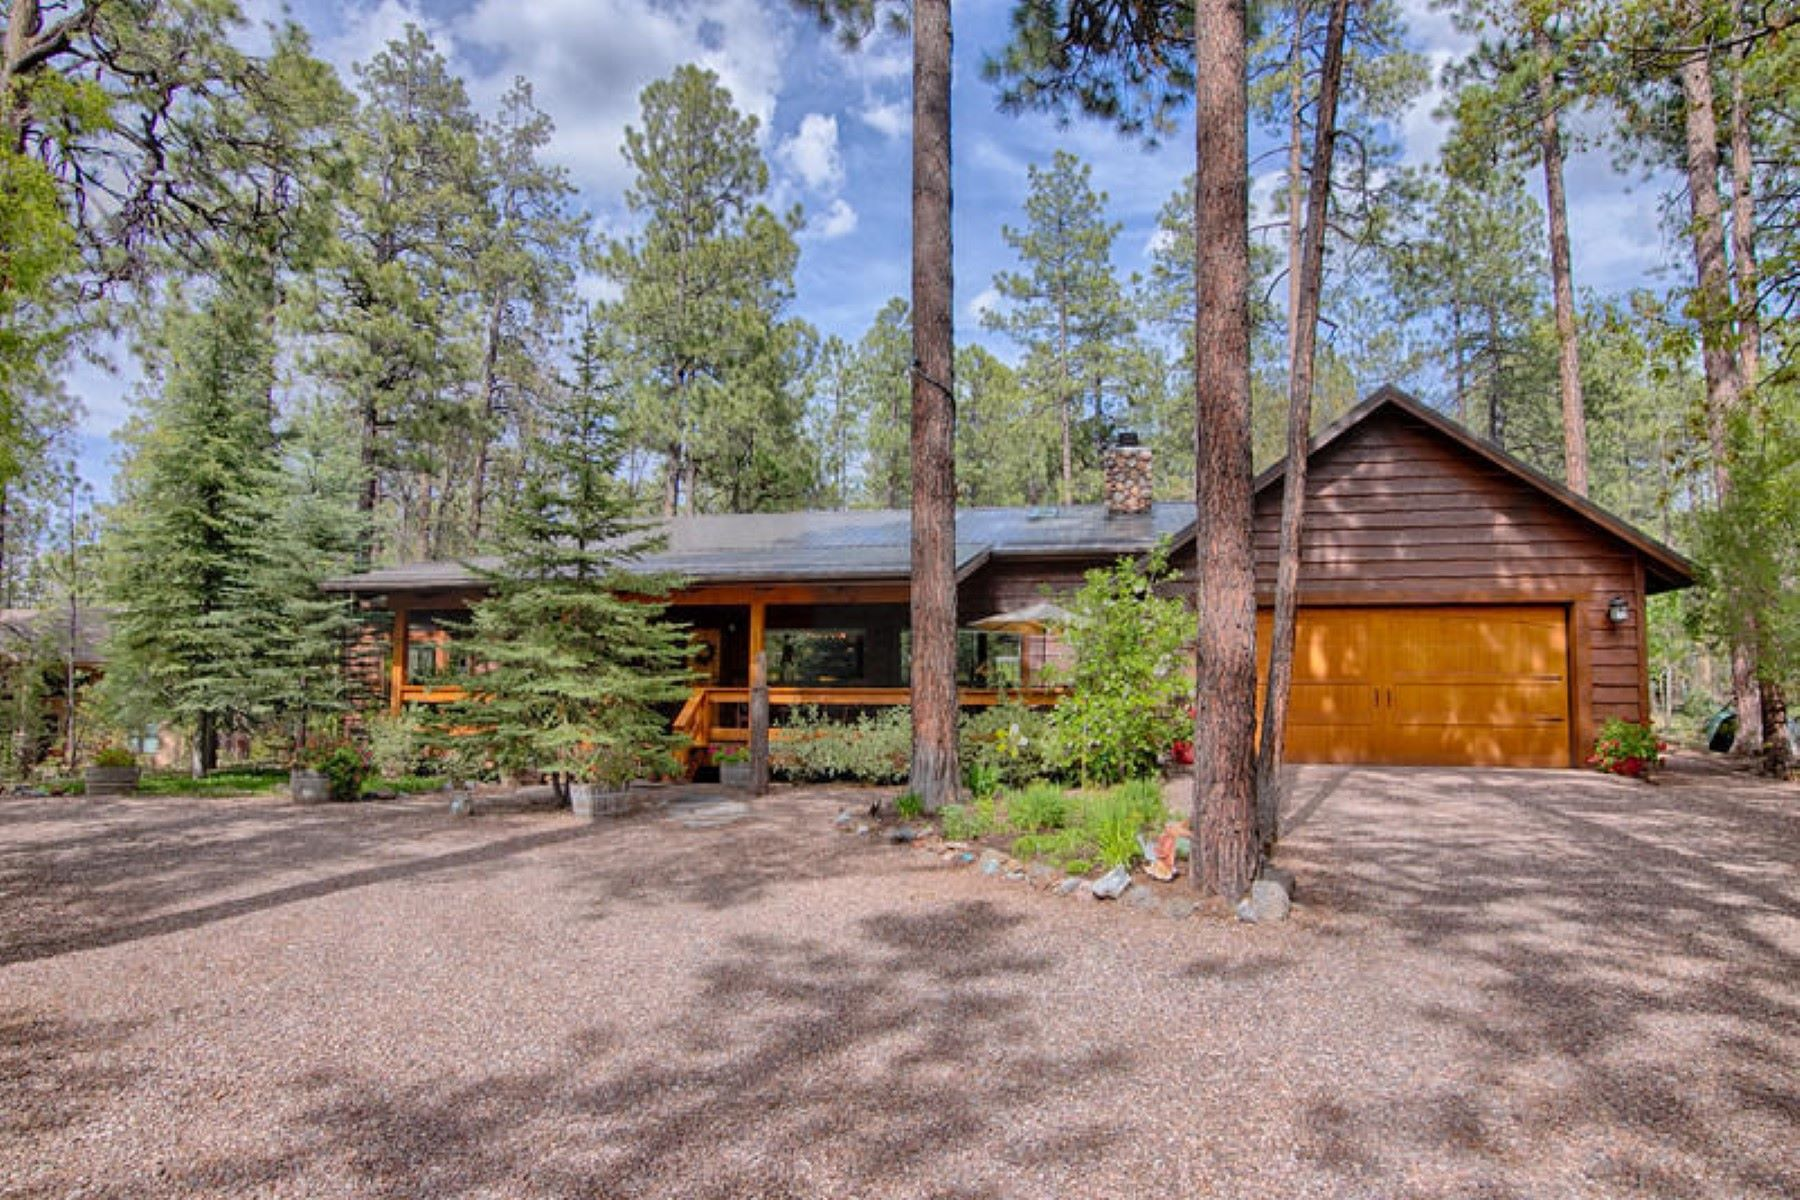 Single Family Homes for Active at White Mountain Summer Homes 3703 LARKSPUR LN Pinetop, Arizona 85935 United States